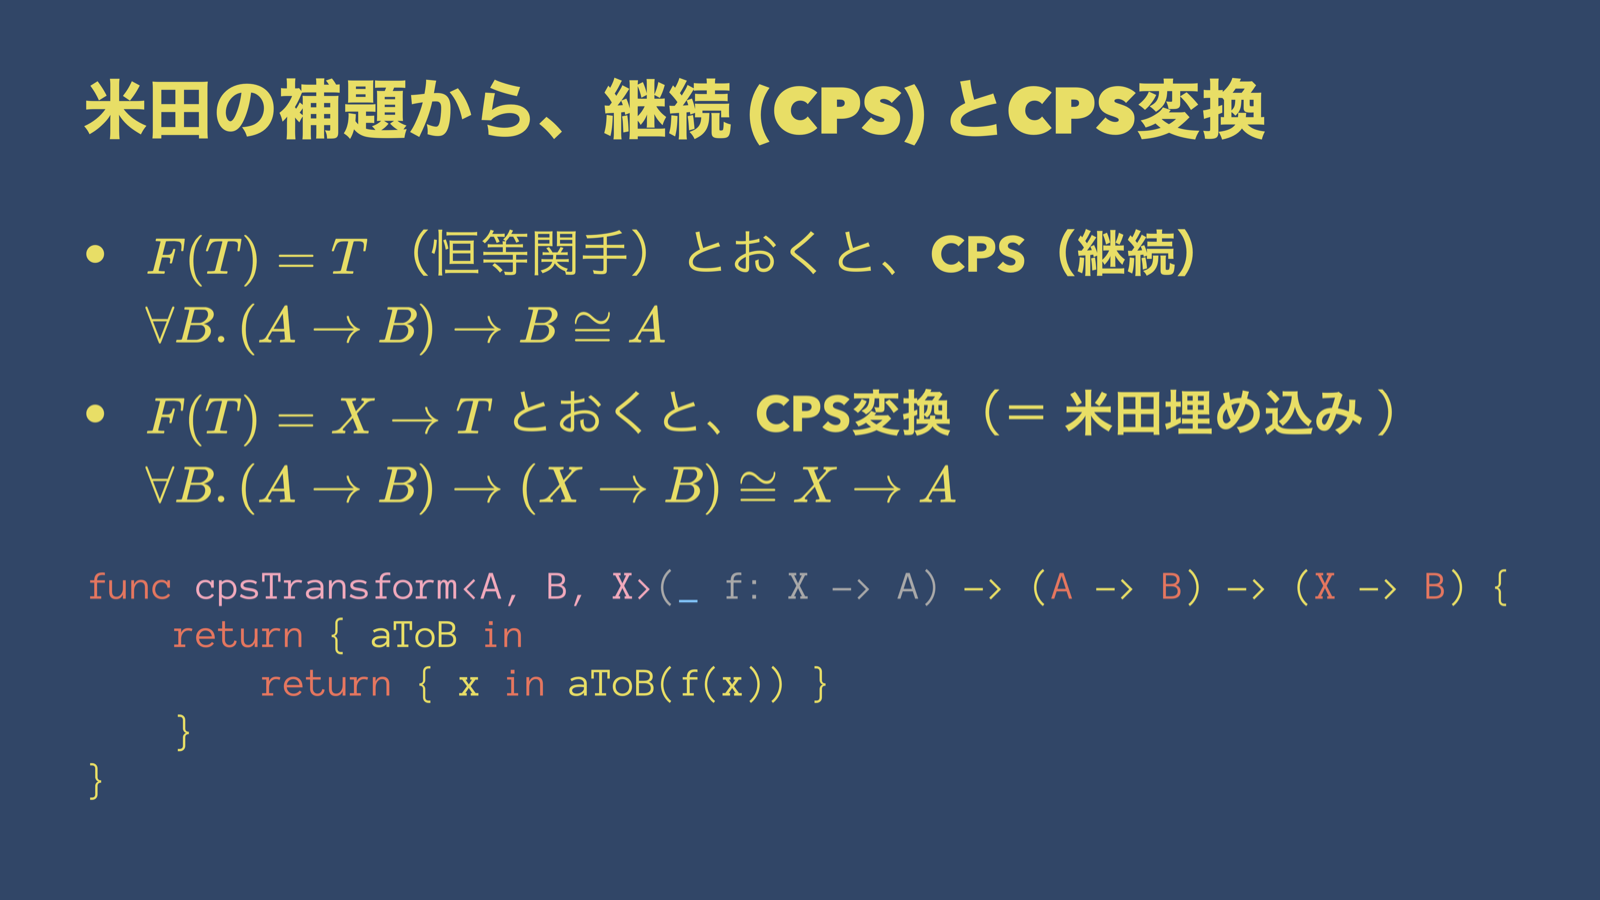 category-p59.png